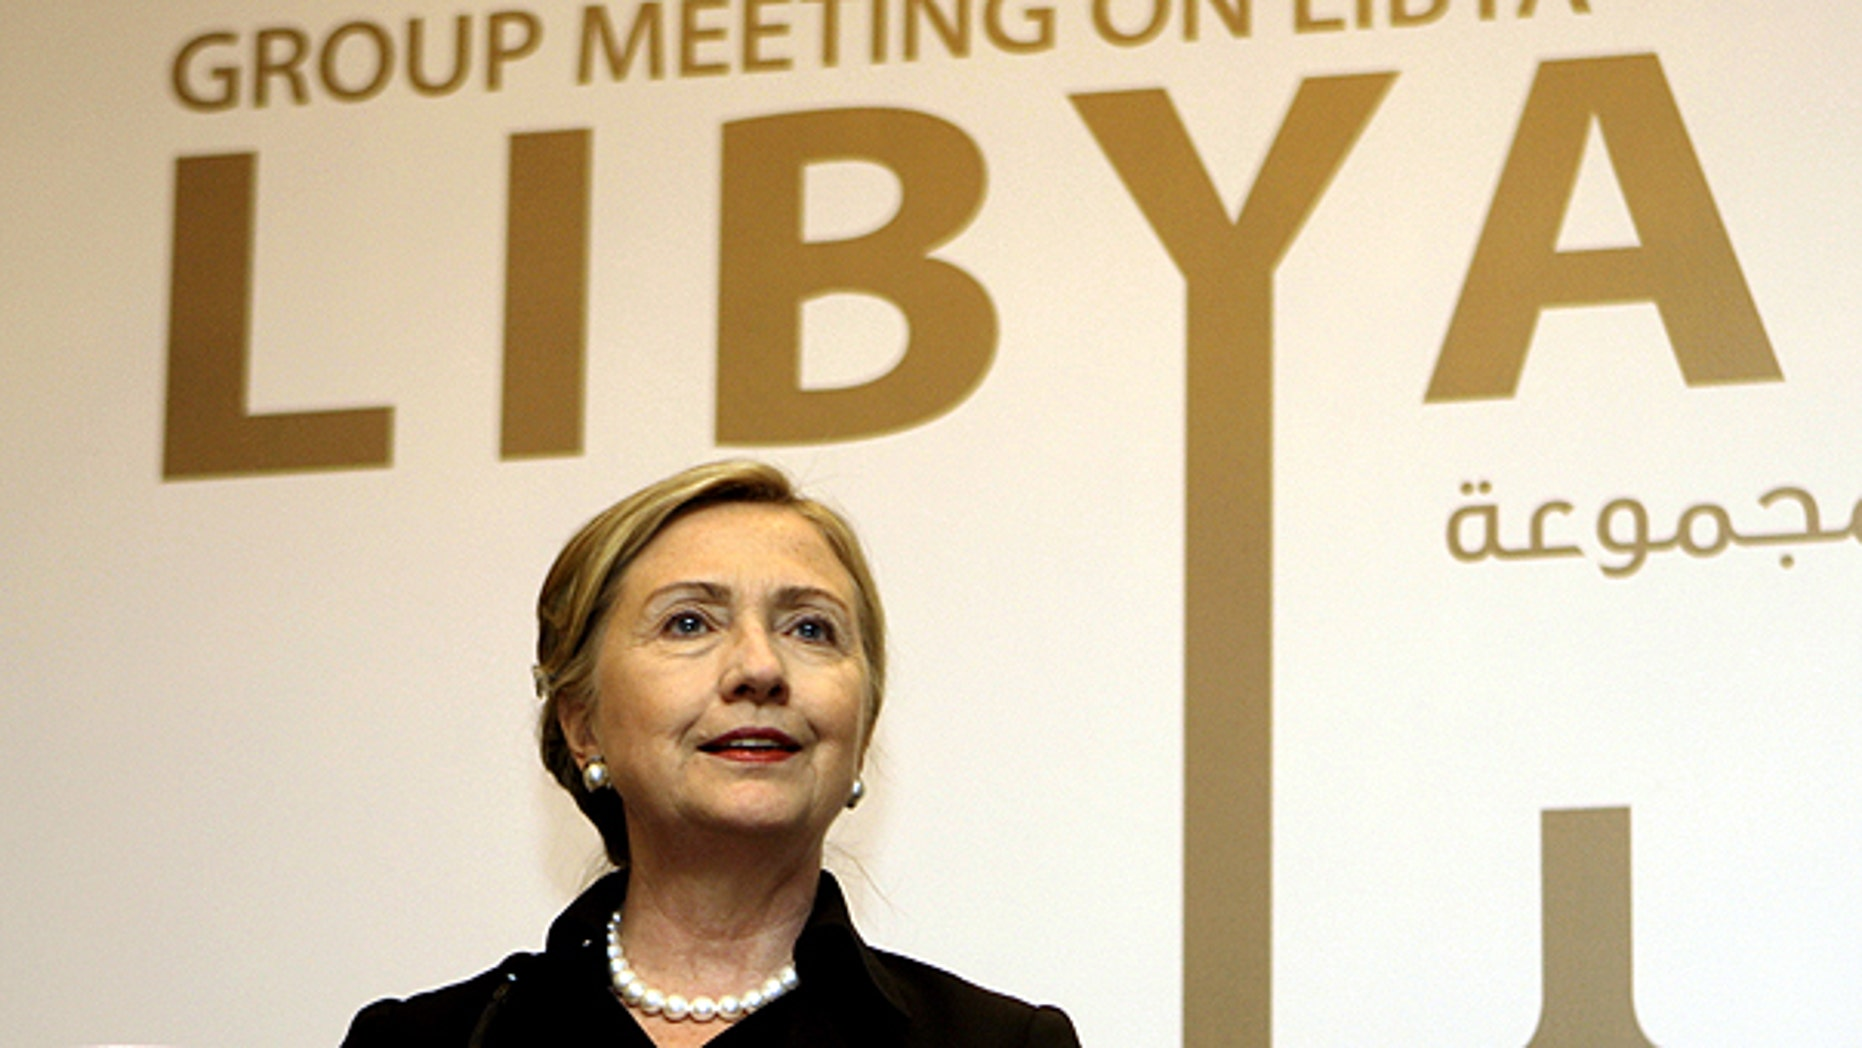 June 9: Secretary of State Hillary Clinton talks to journalists during the third meeting of Contact Group on Libya in Abu Dhabi, United Arab Emirates.